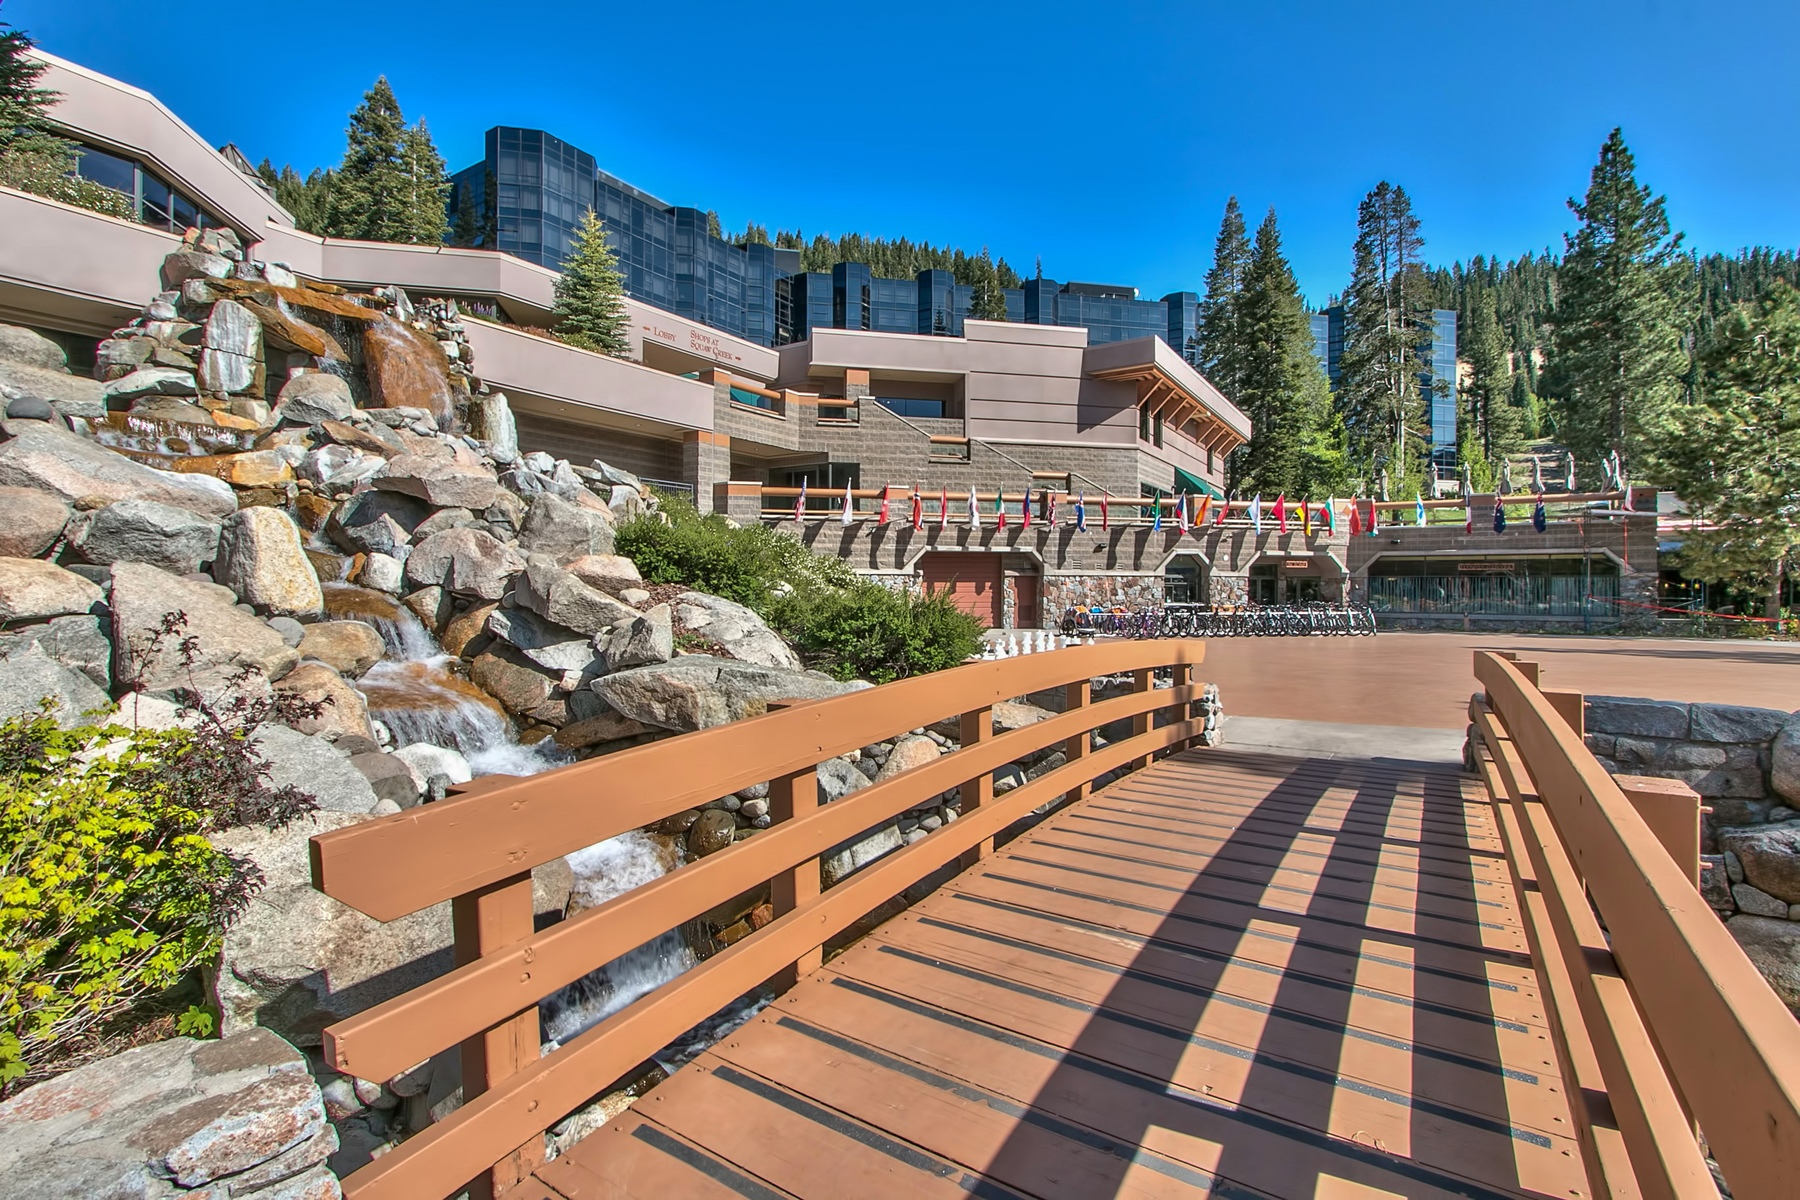 Additional photo for property listing at 400 Squaw  Creek Road #916, Olympic Valley, CA 400 Squaw Creek Road #916 Olympic Valley, California 96146 United States